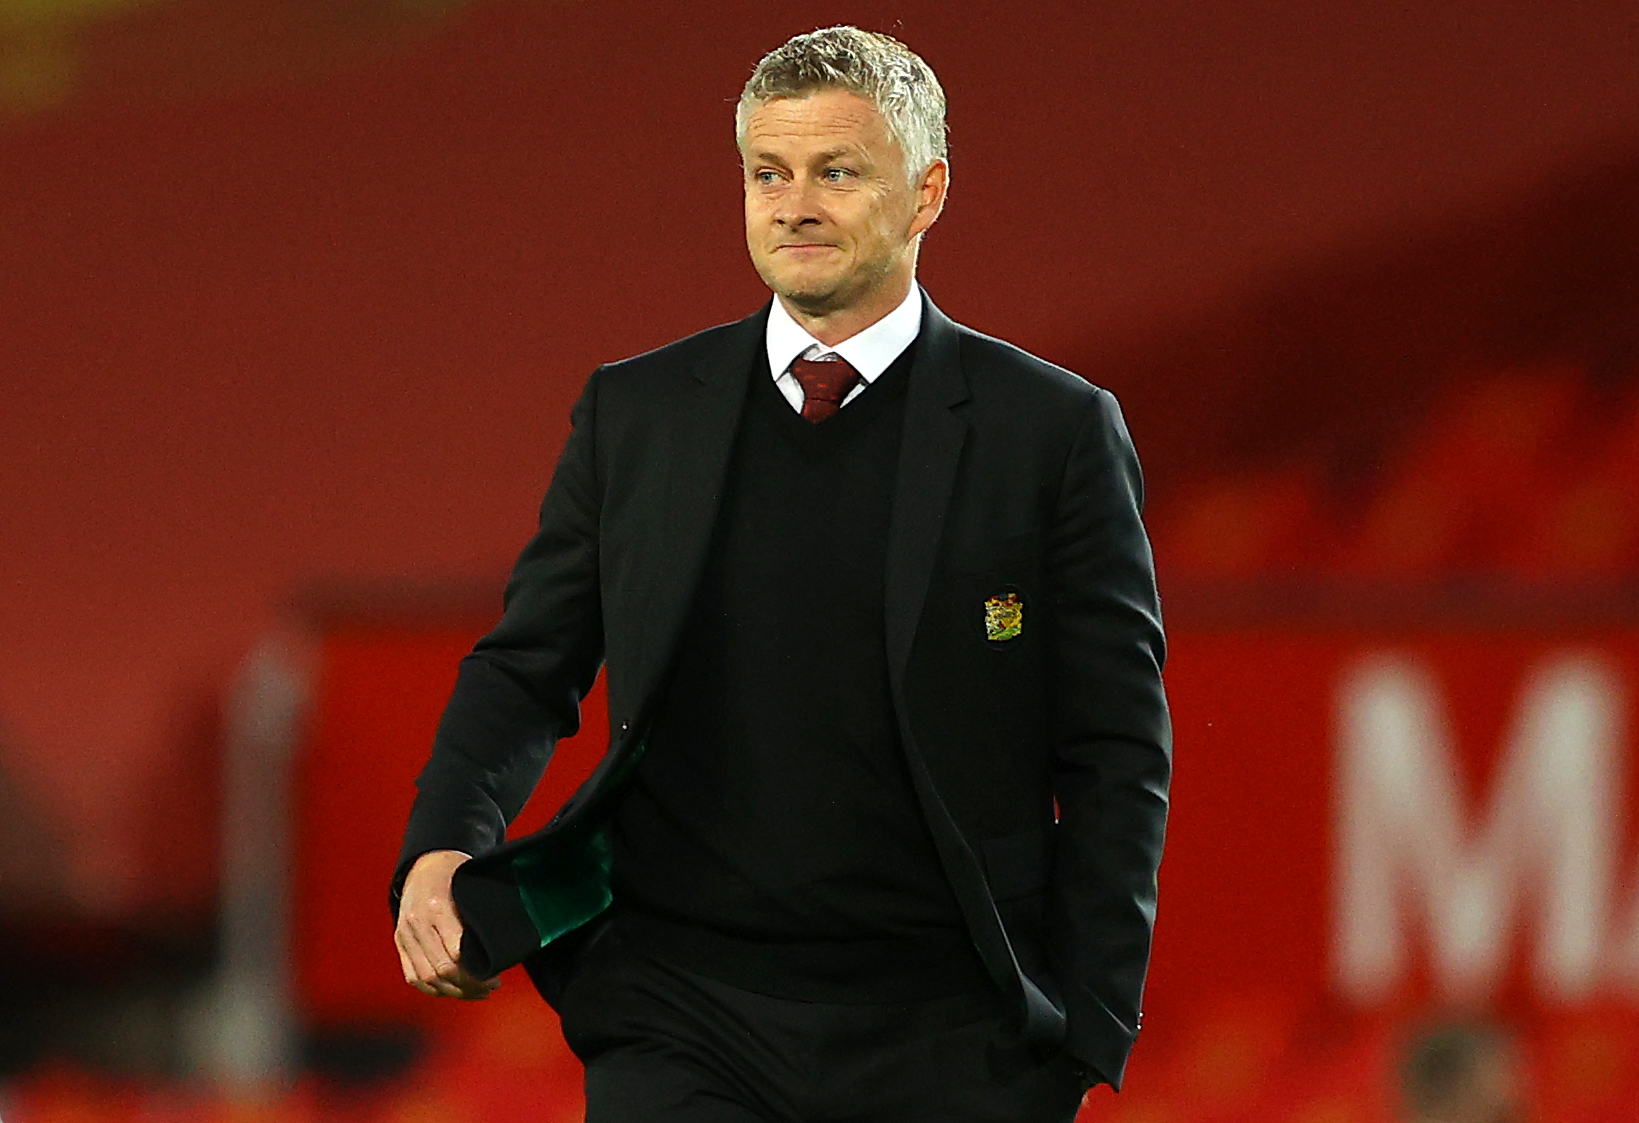 Solskjaer's suitability as Man Utd boss will be looked at if they lose to Newcastle with Pochettino and Allegri lined up